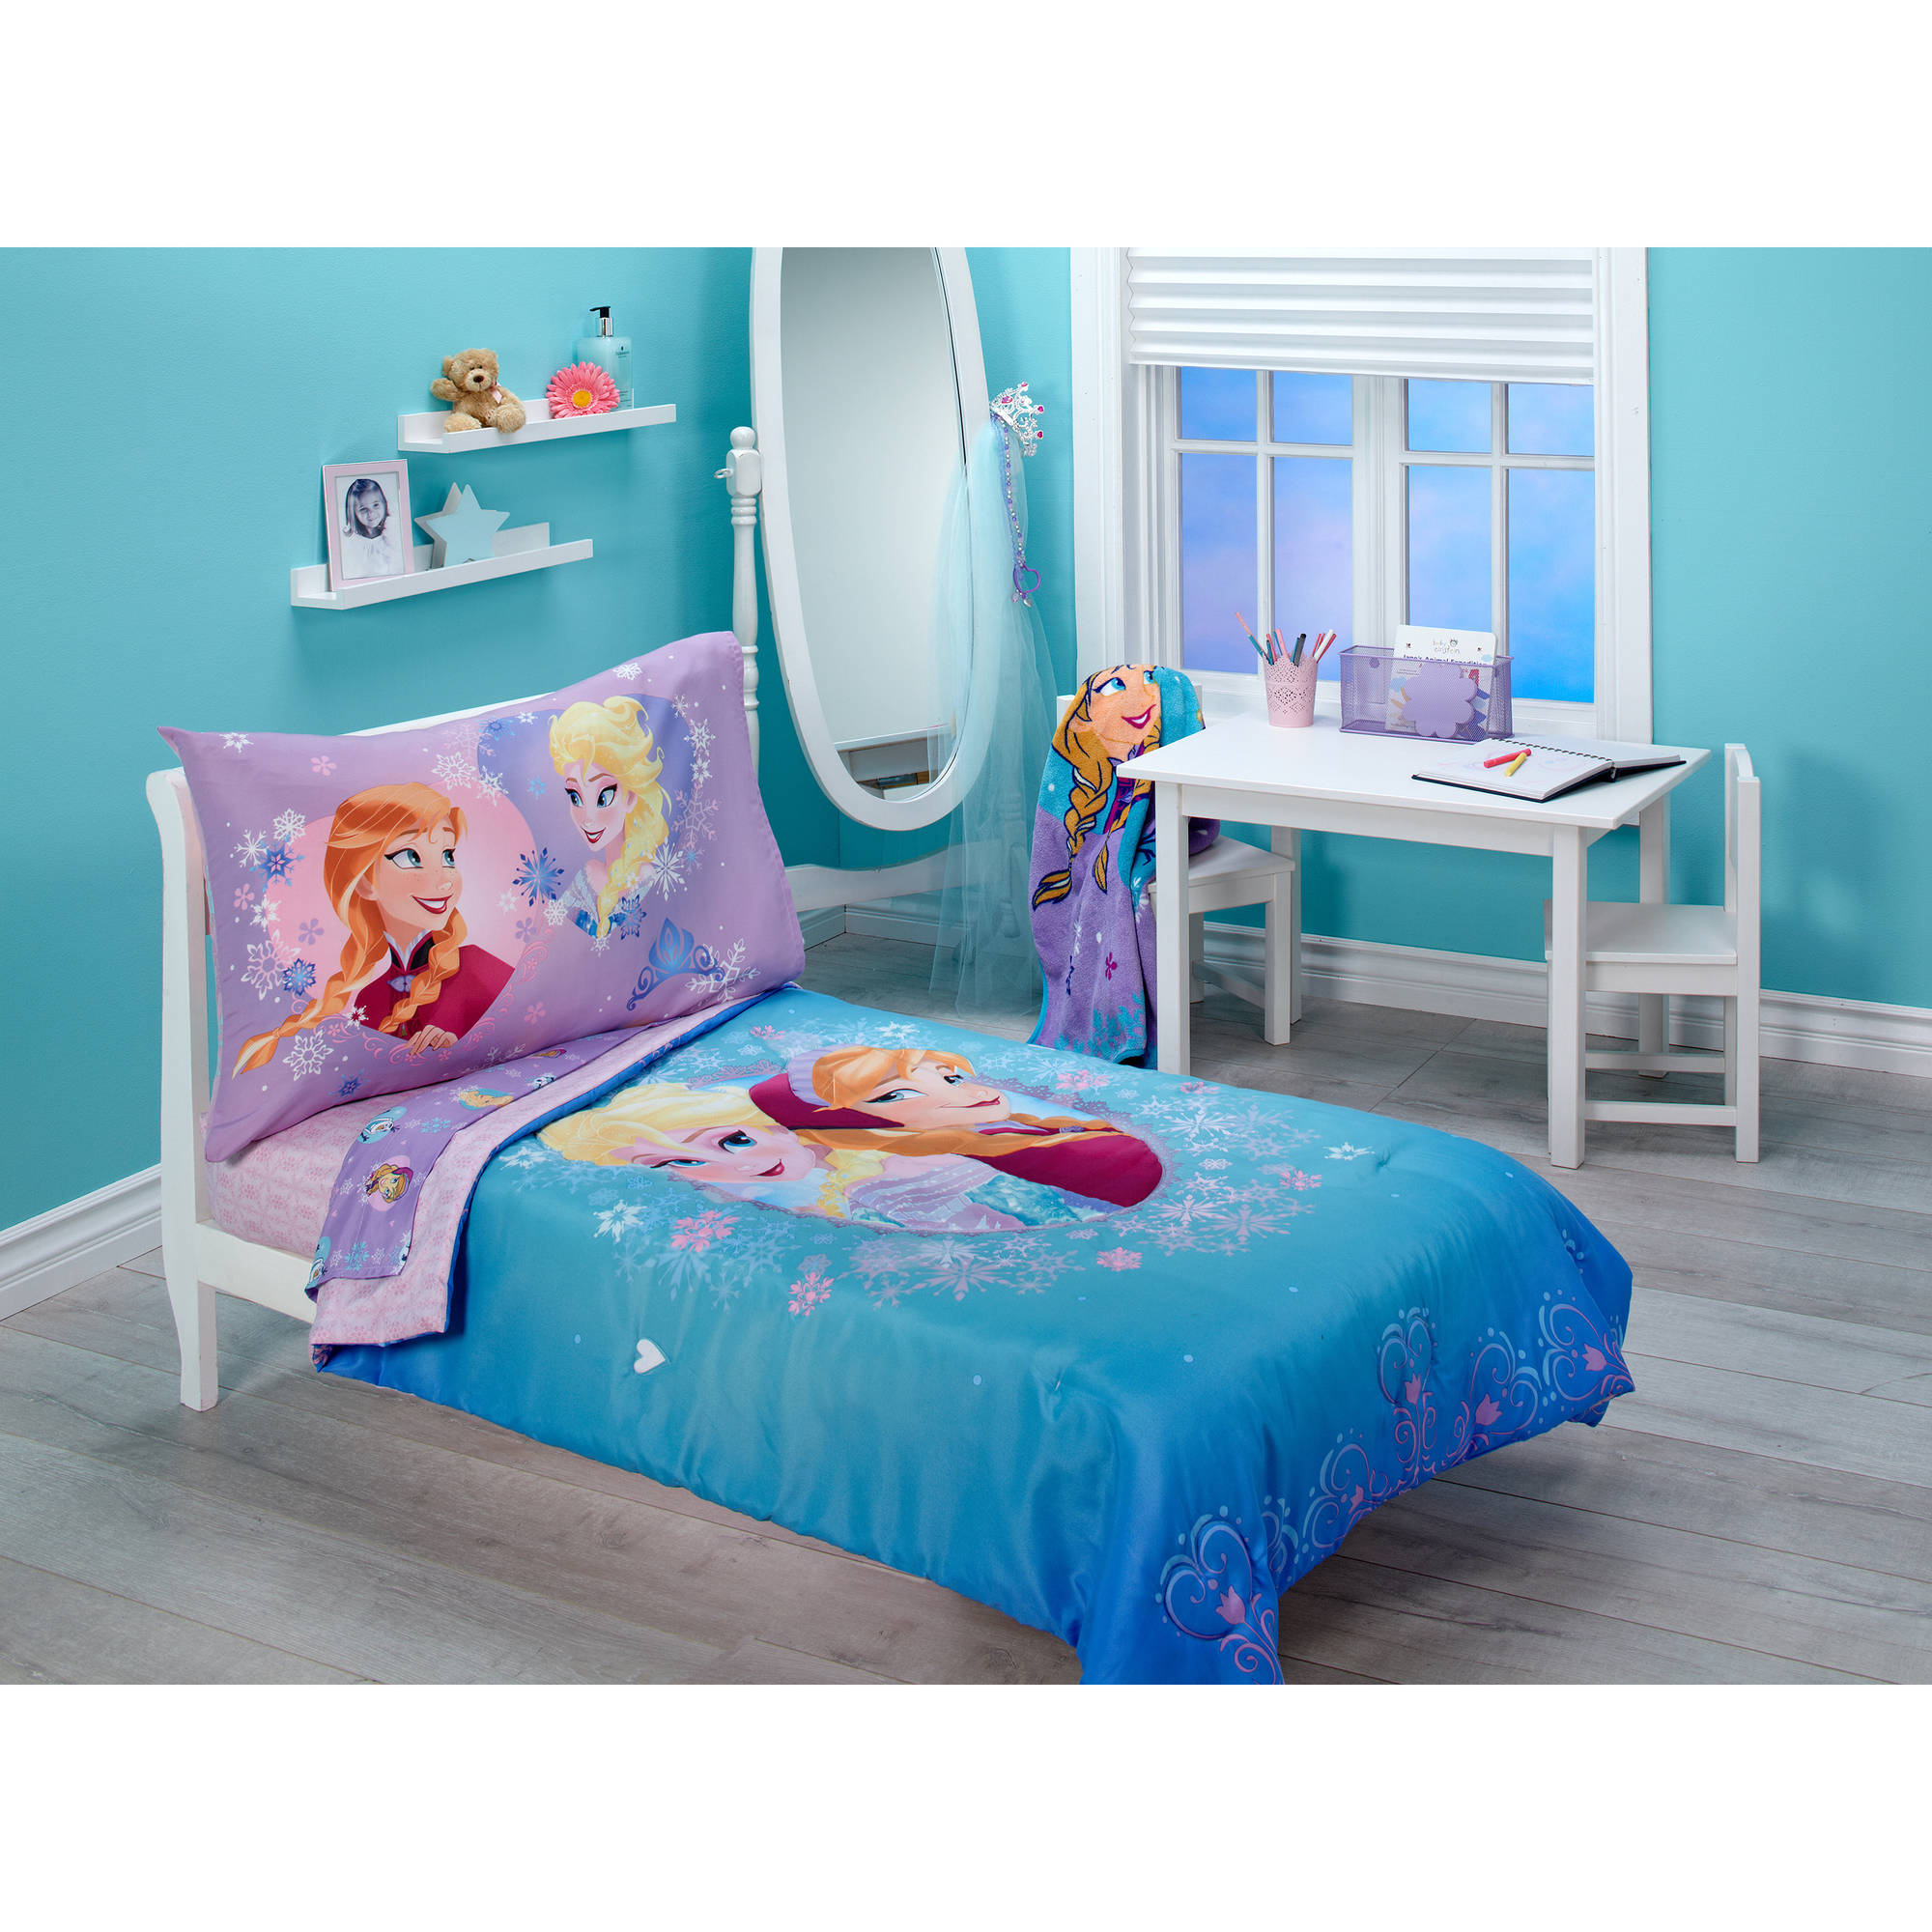 Crown Crafts Infant Products Inc Frozen Magical Sisters 3 - Piece Toddler Bedding Set with BONUS Matching Pillow Case